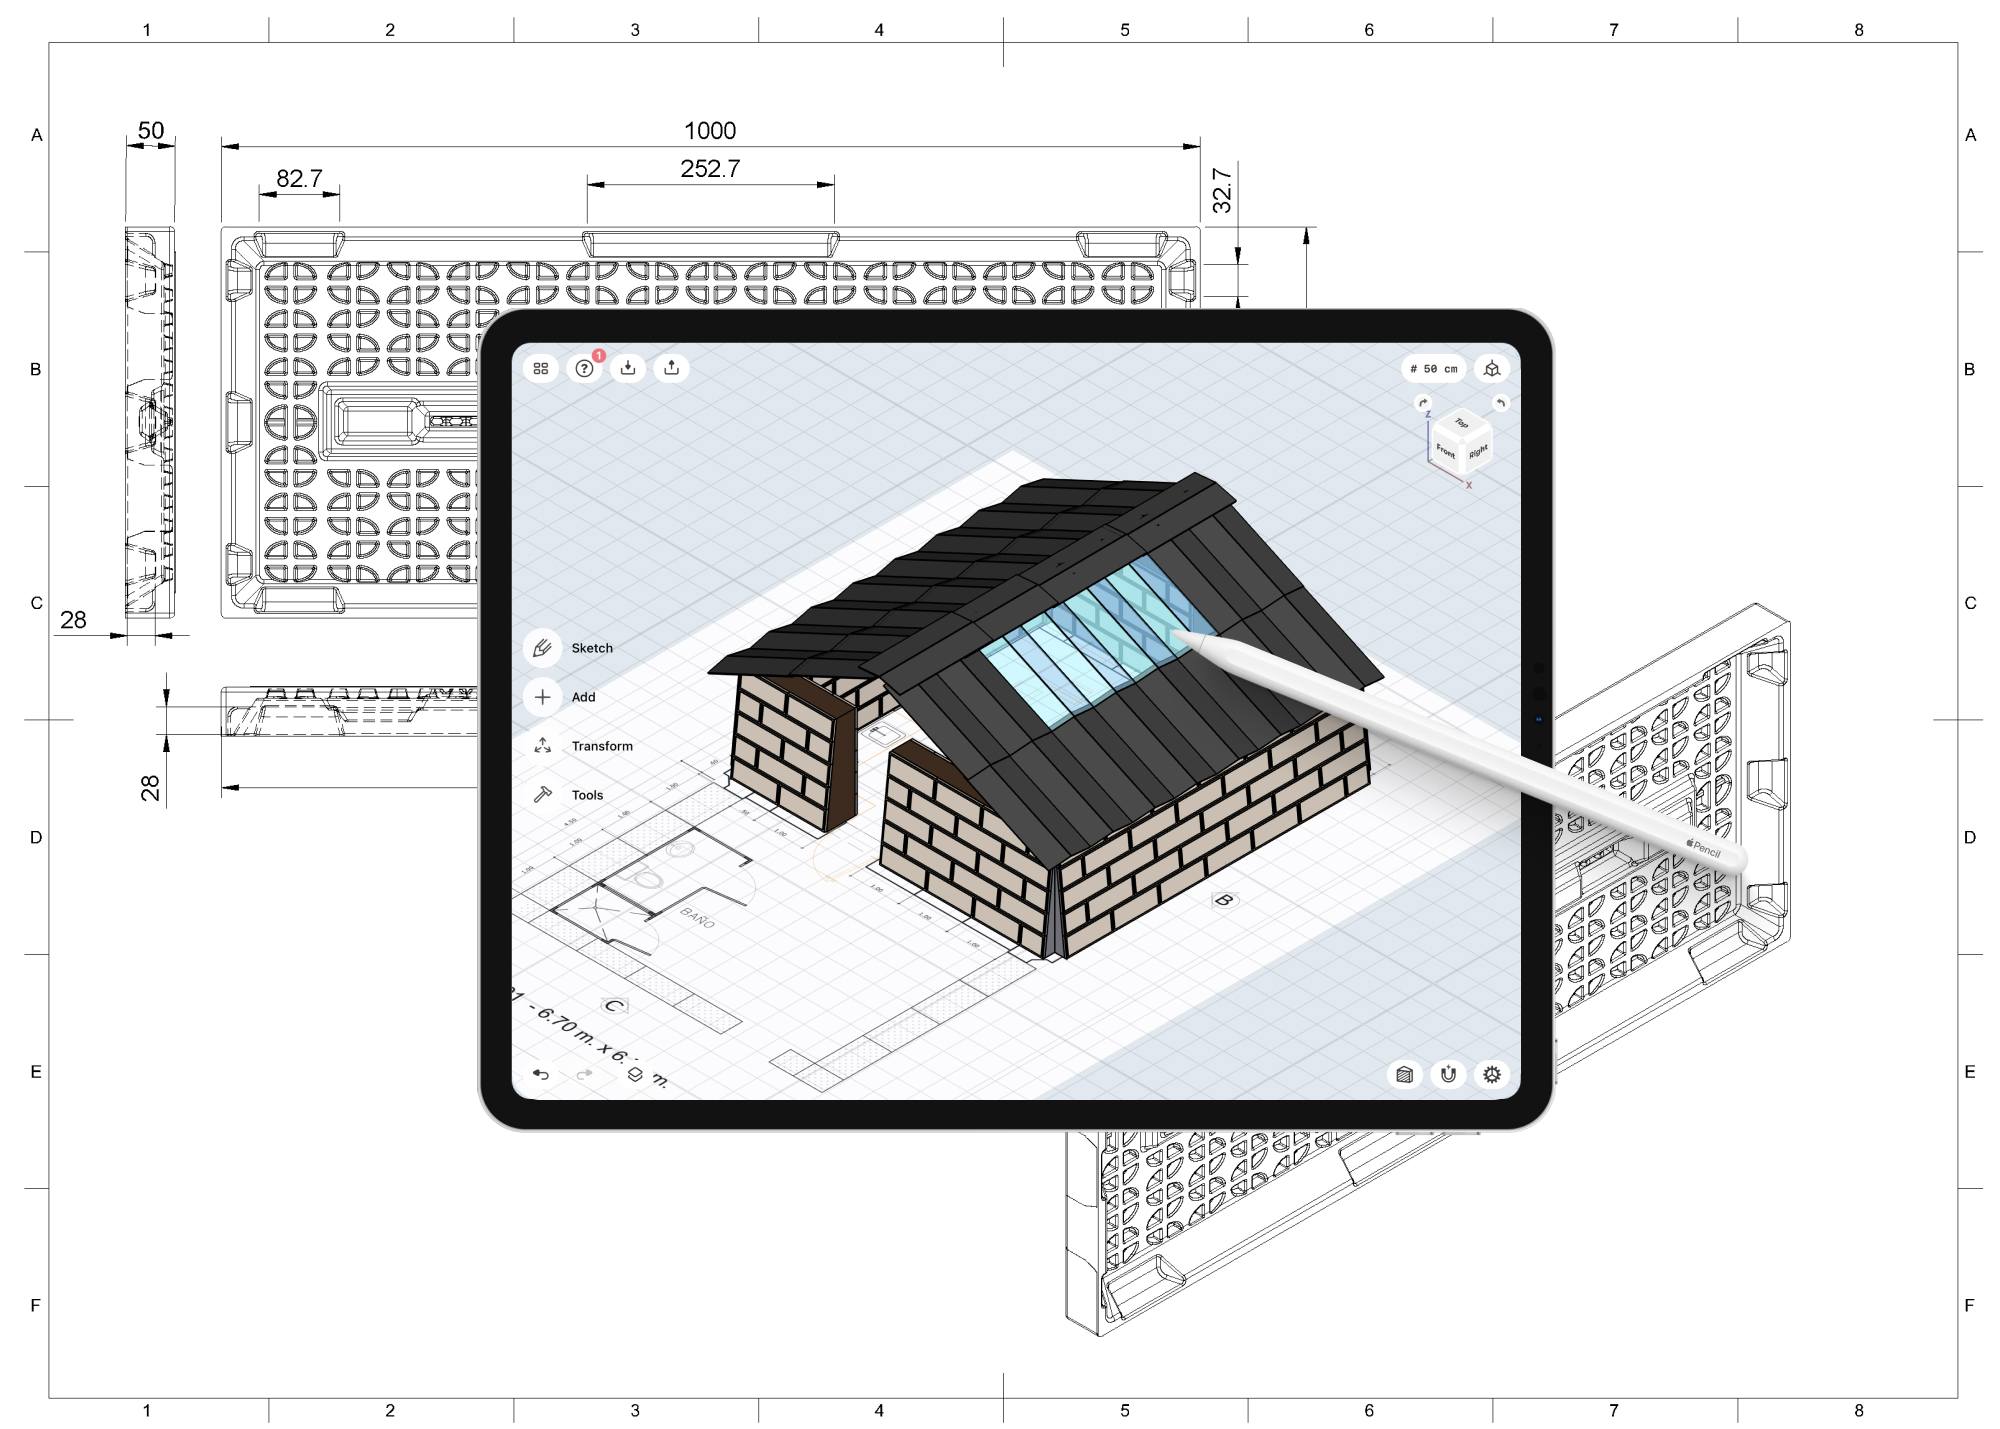 Design concept of emergency housing on Shapr3D on iPad